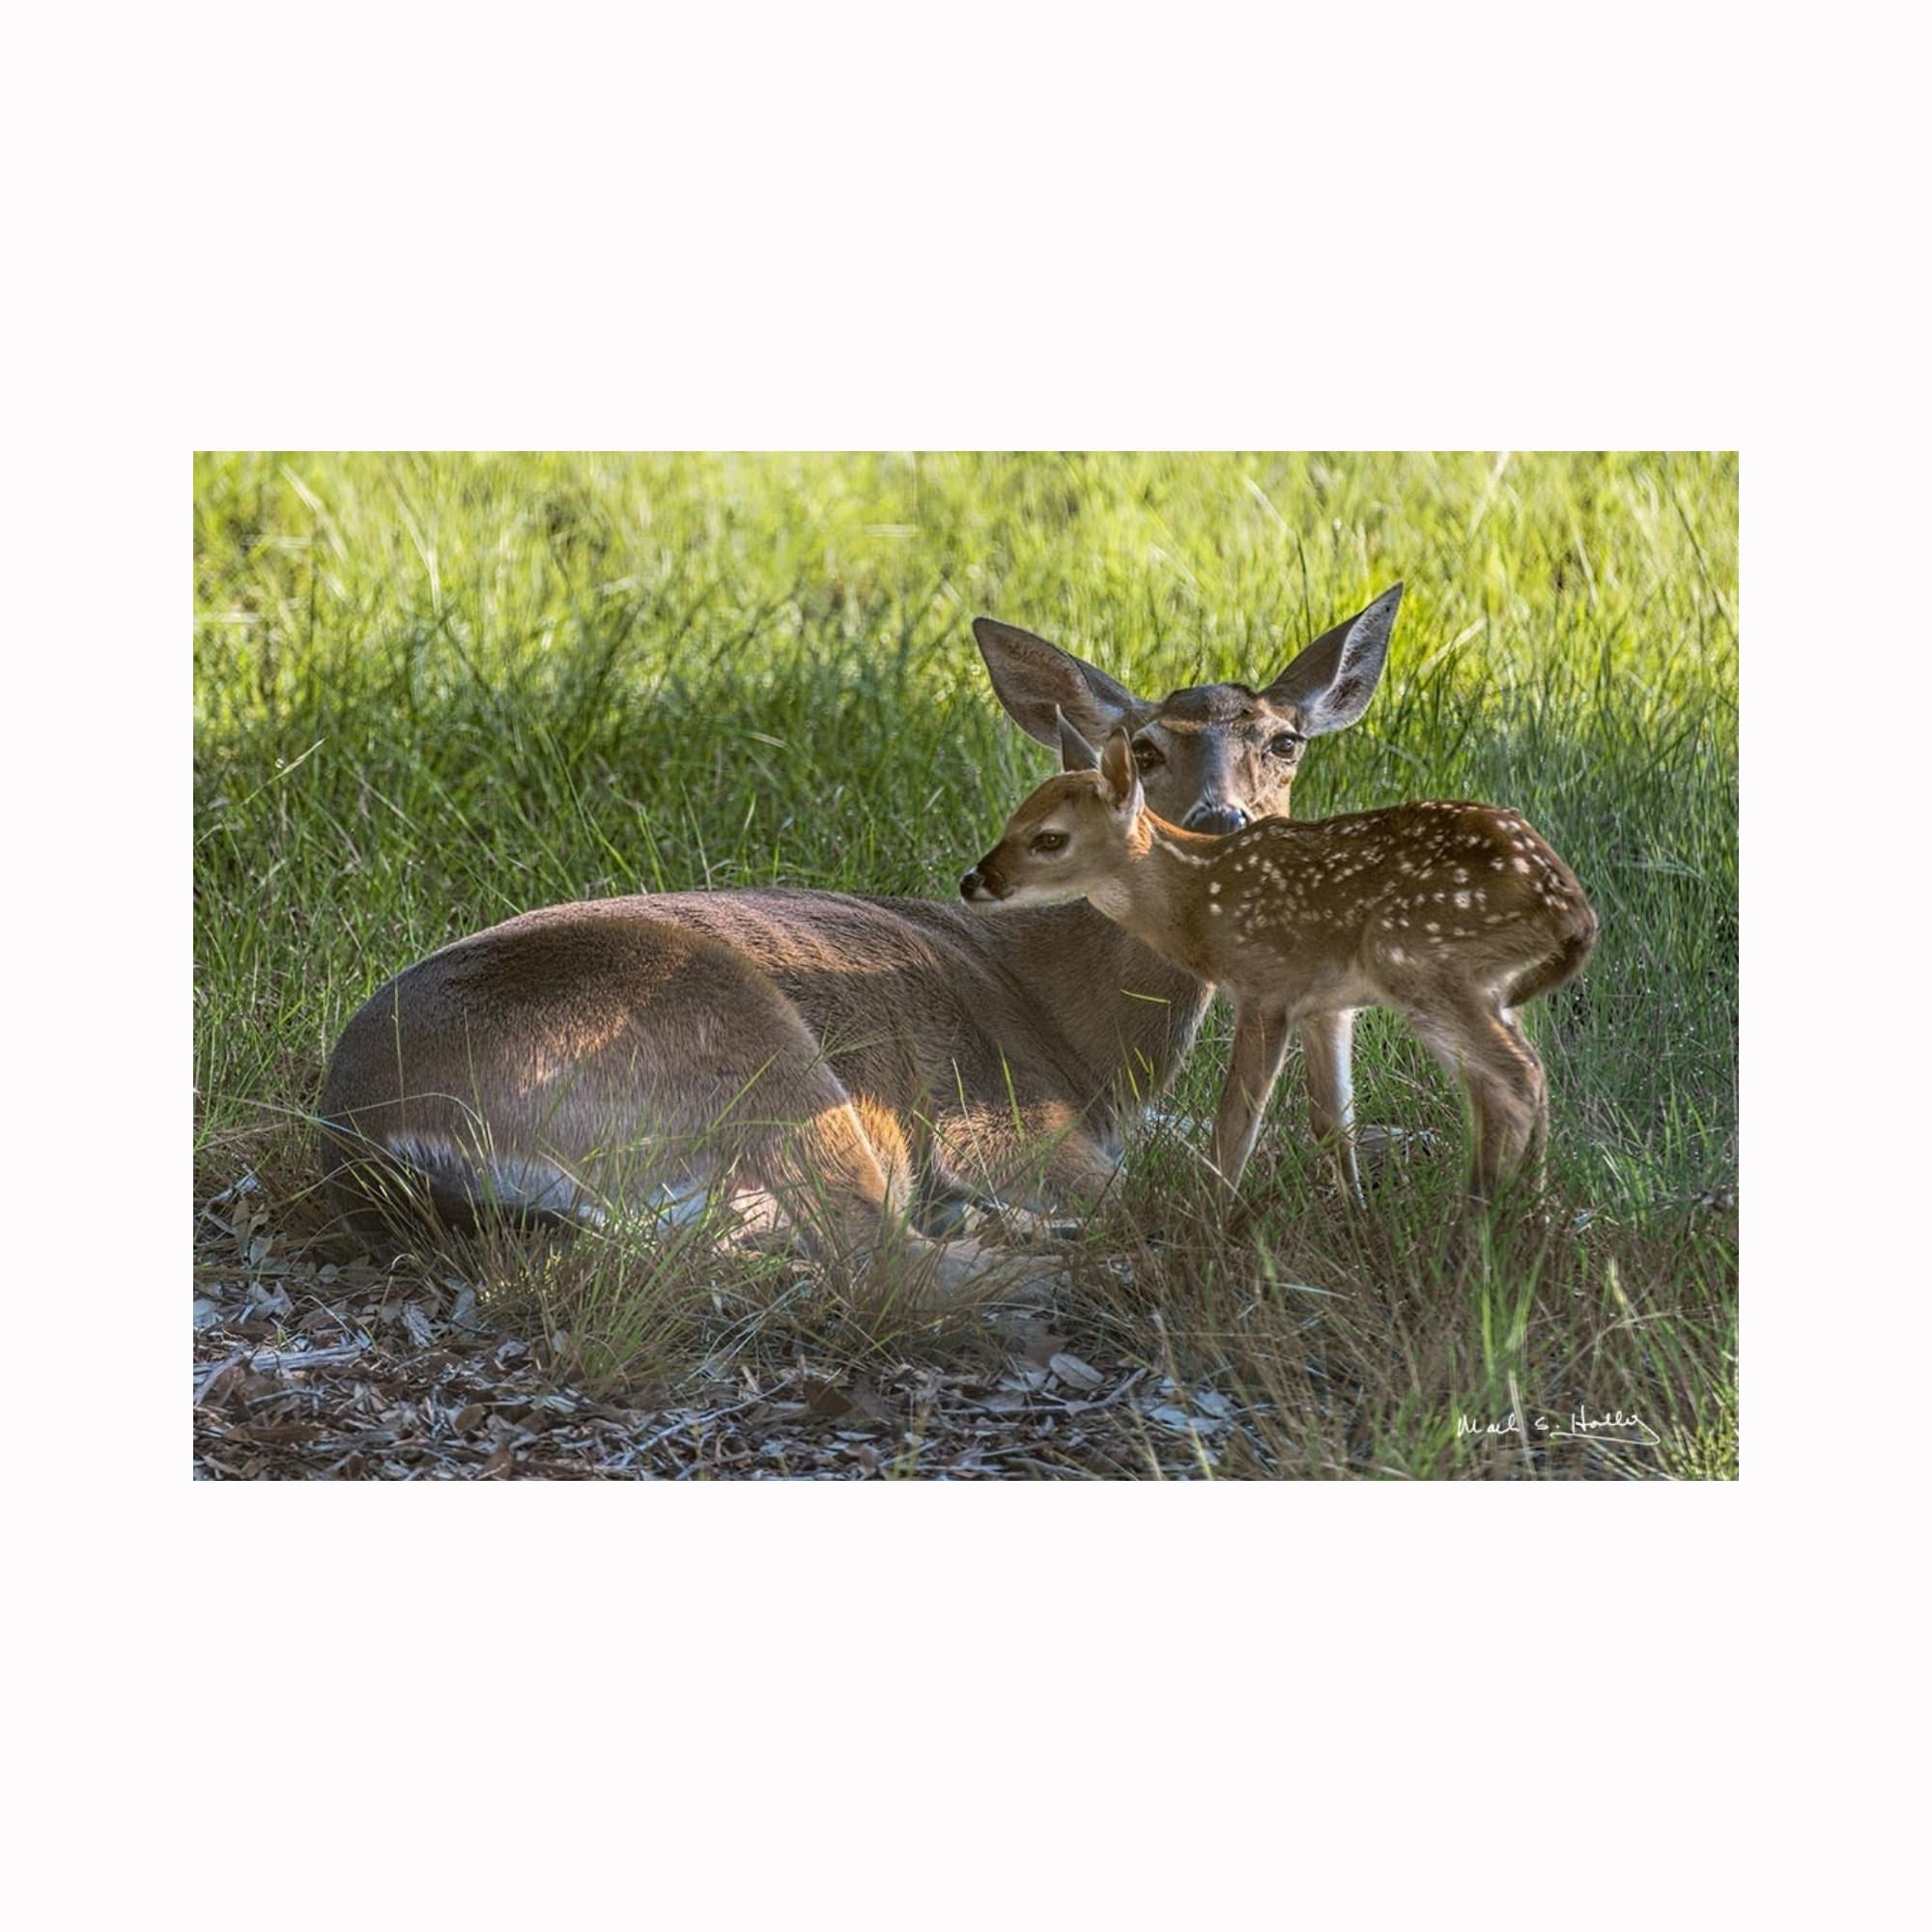 """Newborn Fawn Hiding"" by digital photographer Mark Holly 